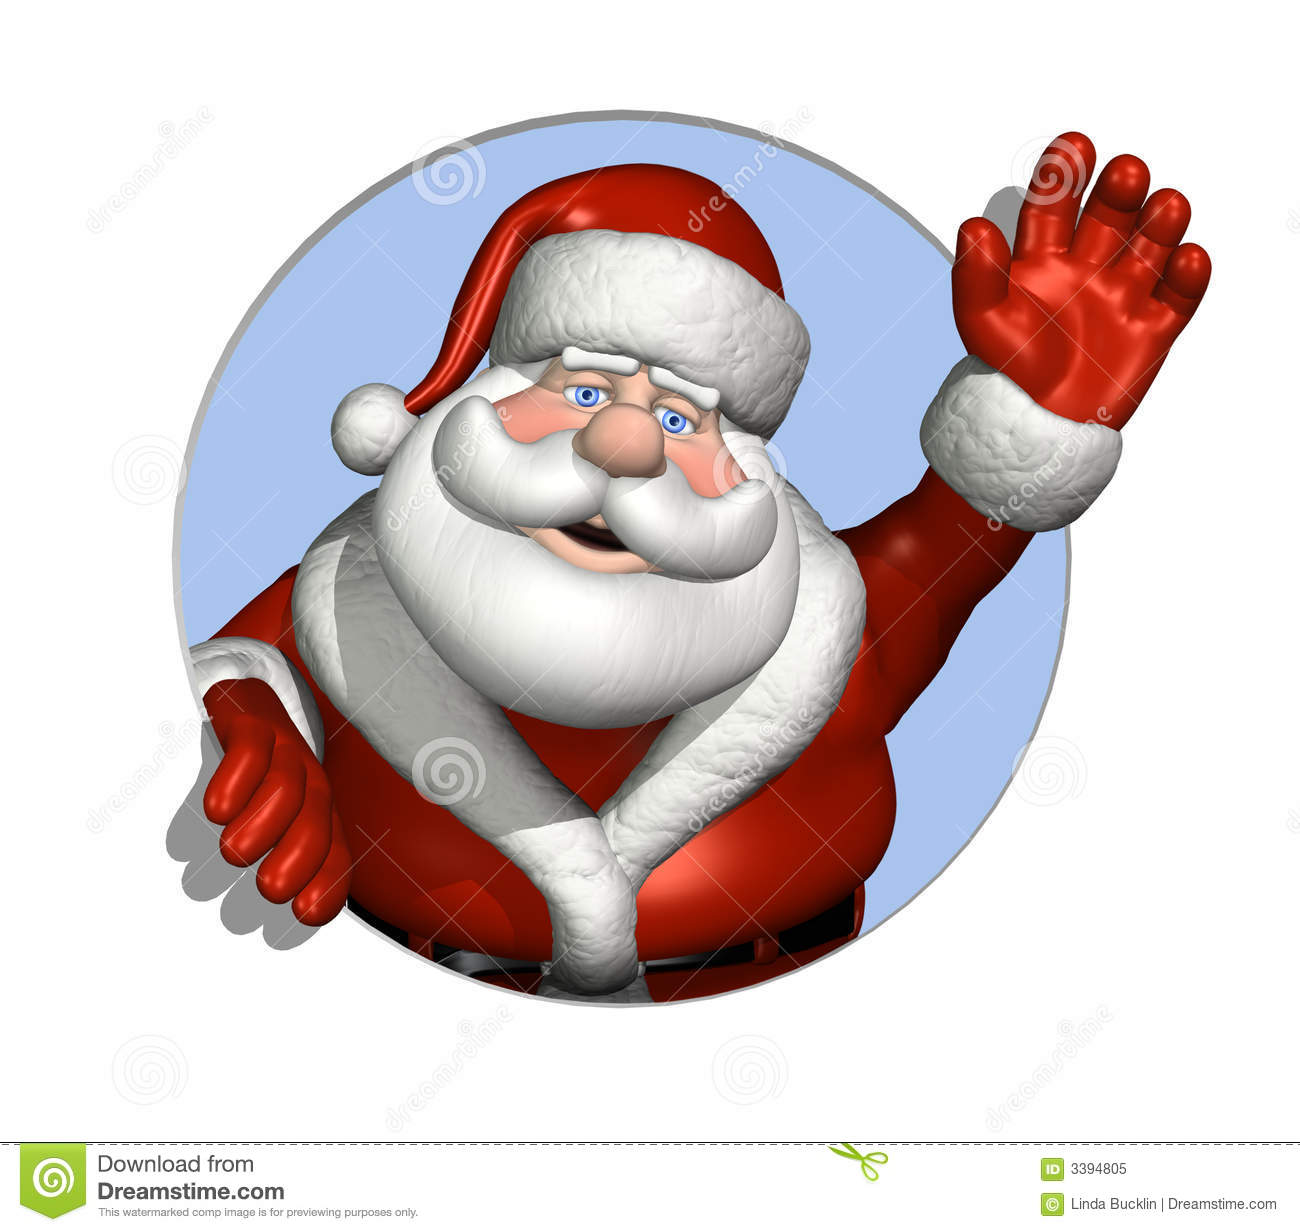 Santa waving through a circle stock illustration